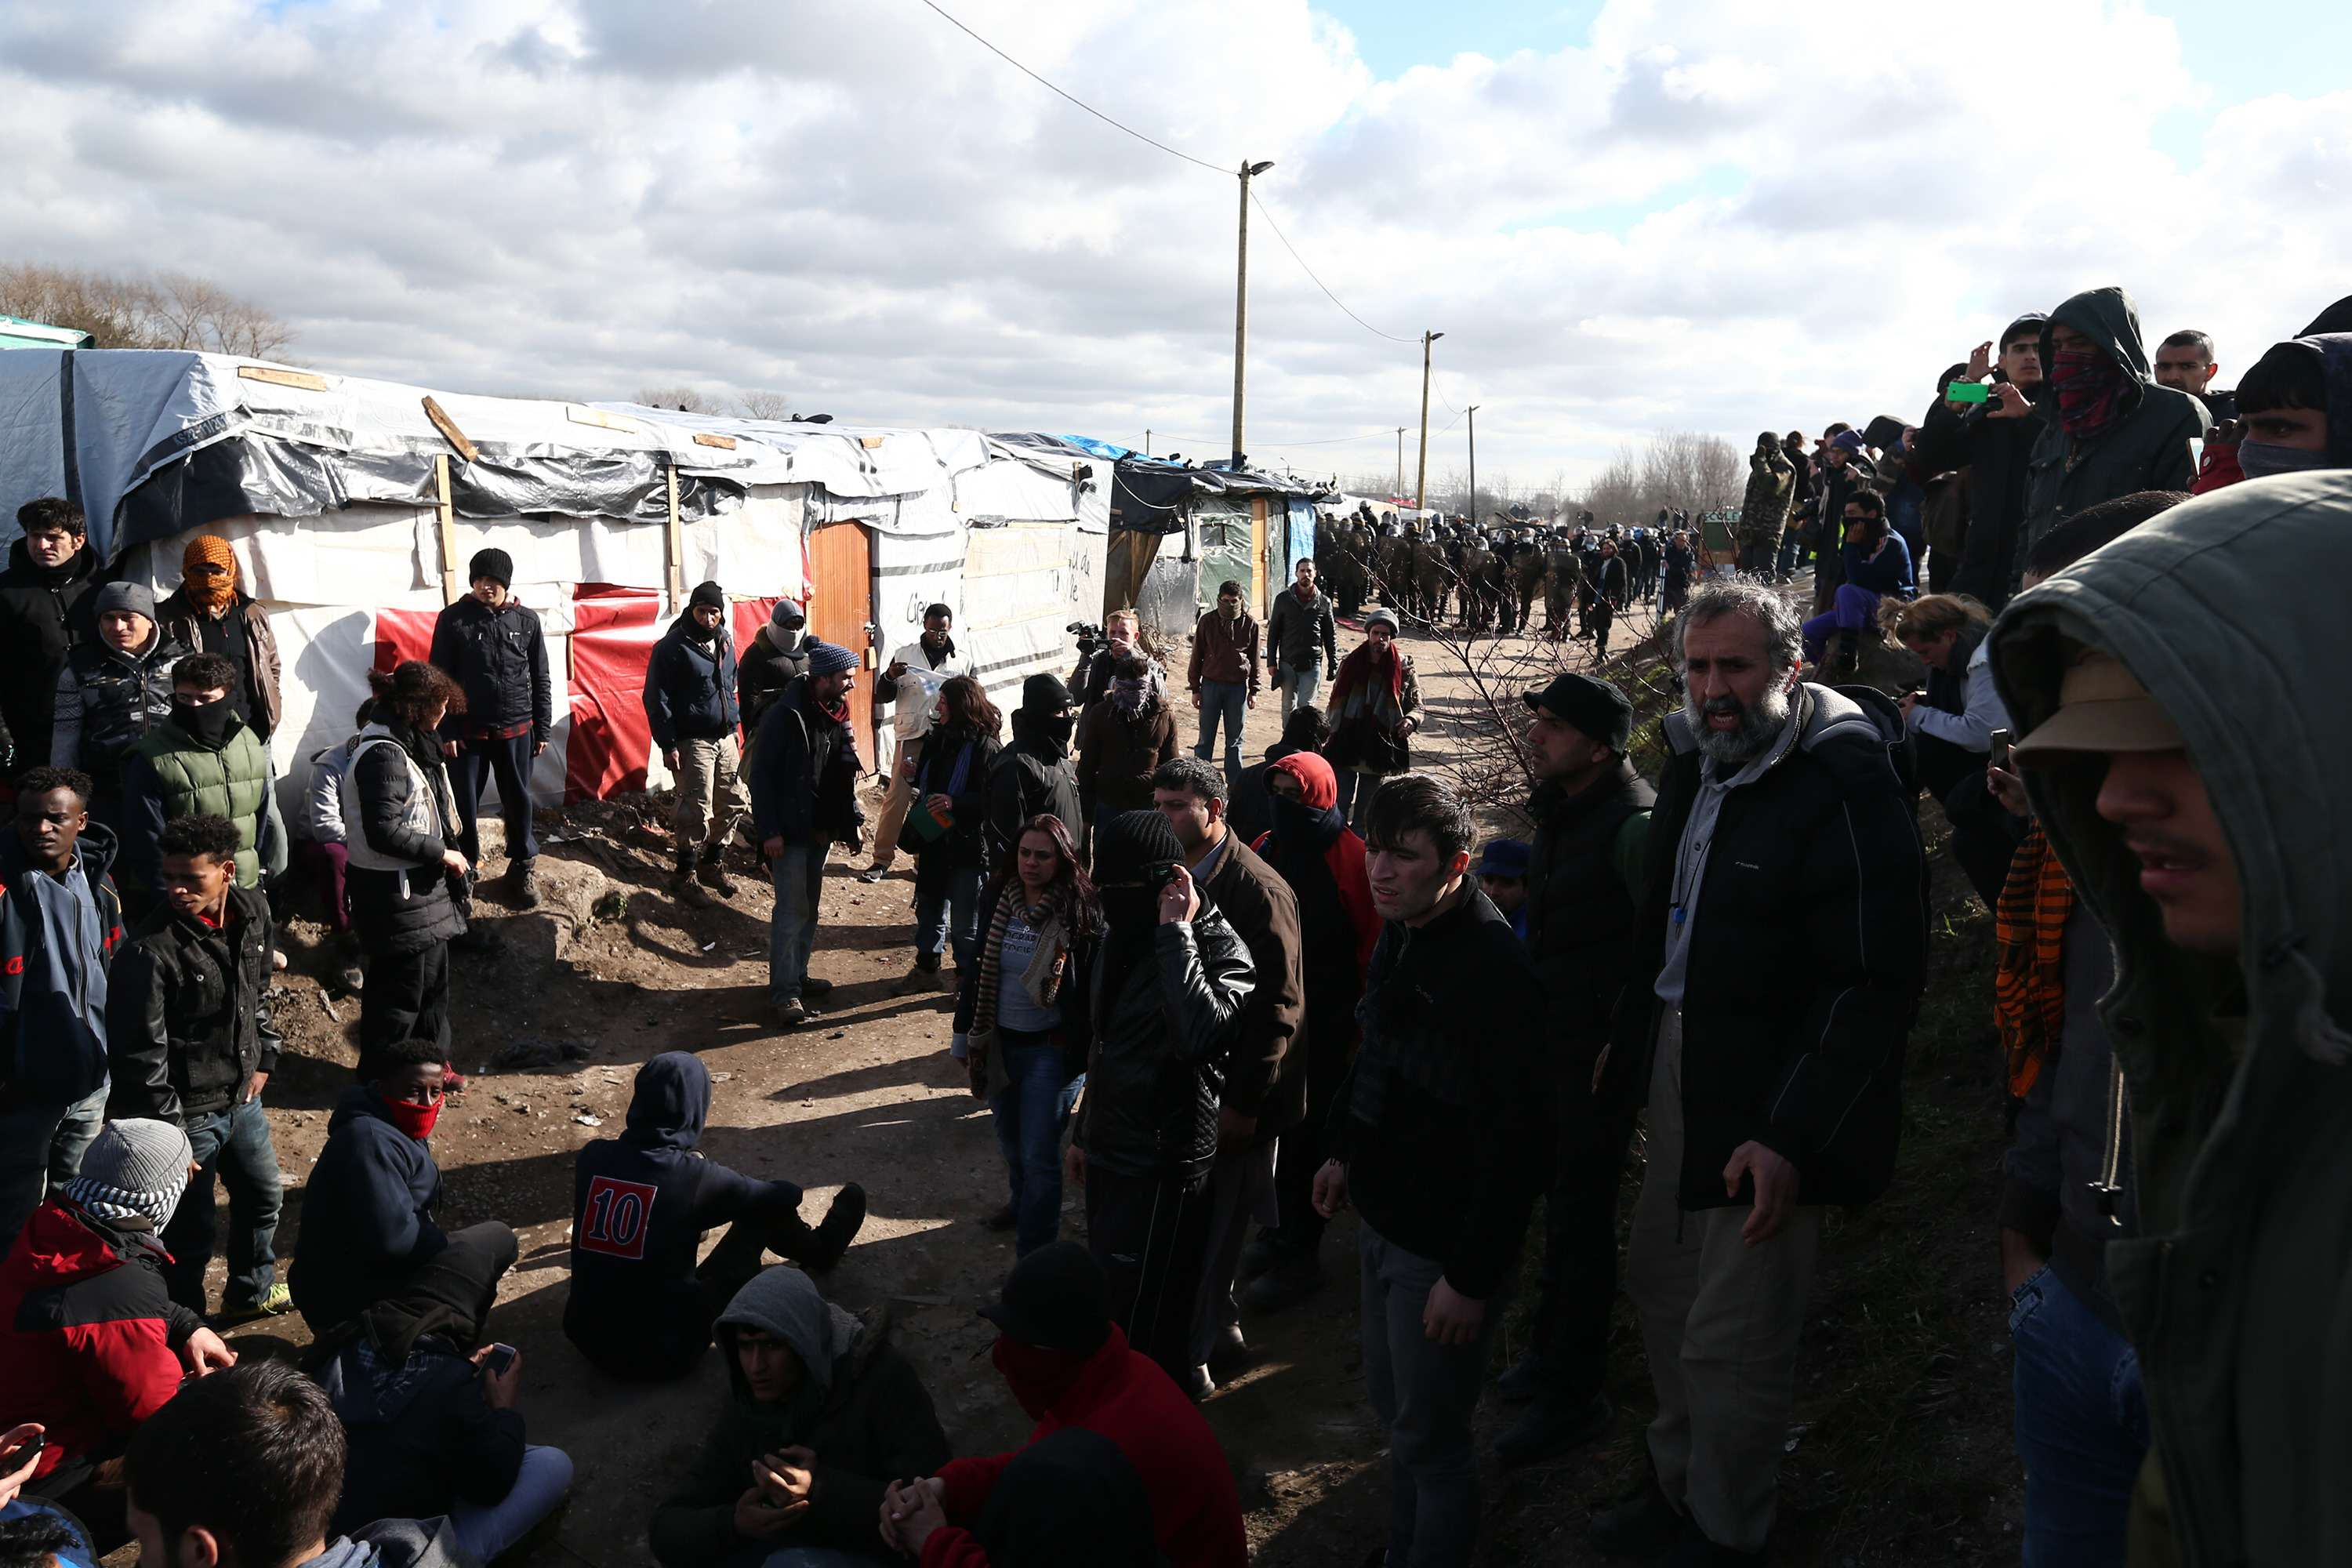 UK To Build 13 Foot Wall To Contain Migrants In Calais calais 1